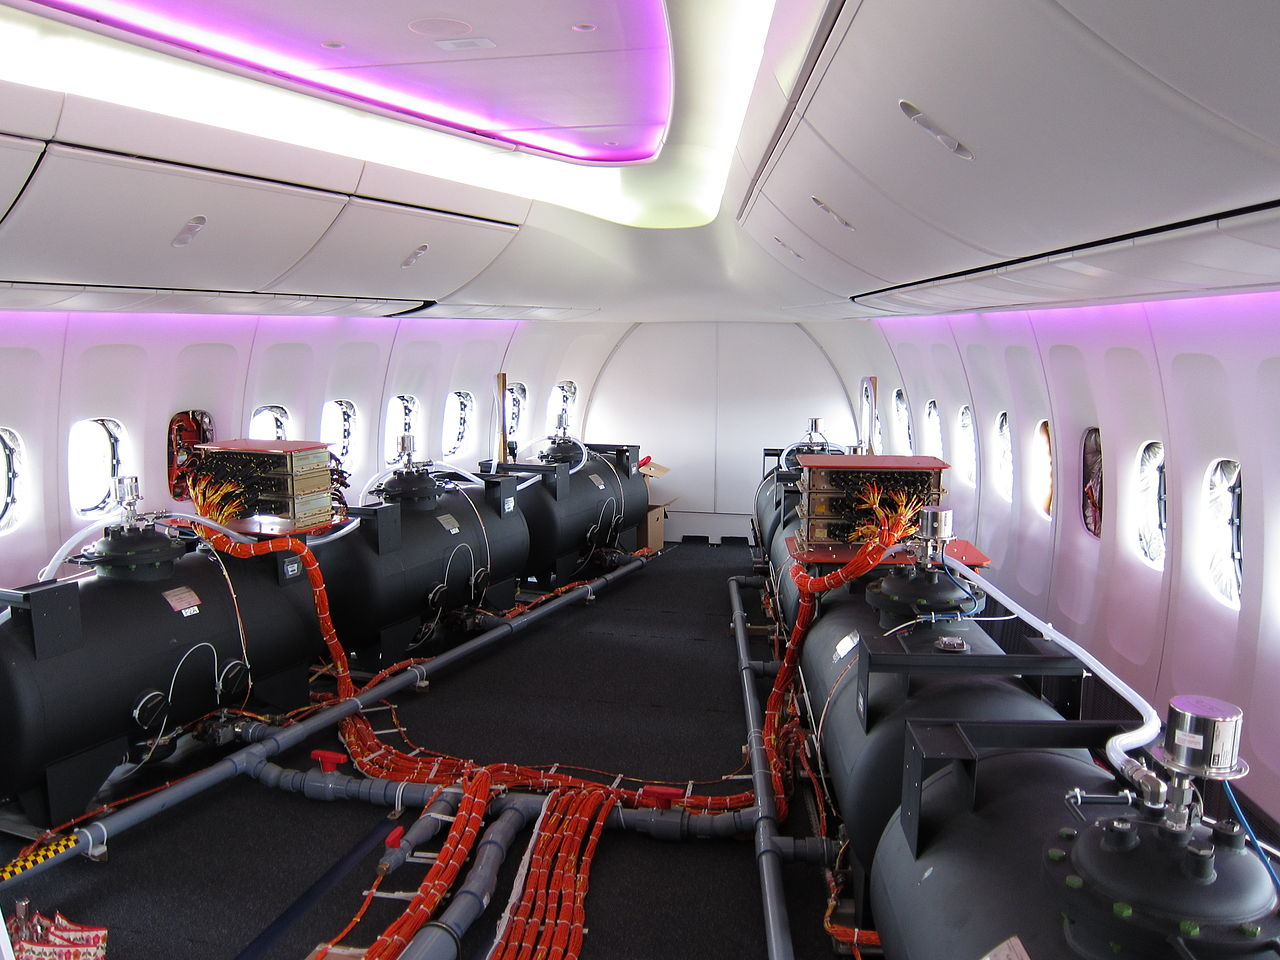 Note the overhead  mood  lighting is a different color and the photo is at a slightly different angle allowing you to see where some wiring for test ... & Debunked: Chemtrail Plane Interior (Ballast Barrels) | Metabunk azcodes.com